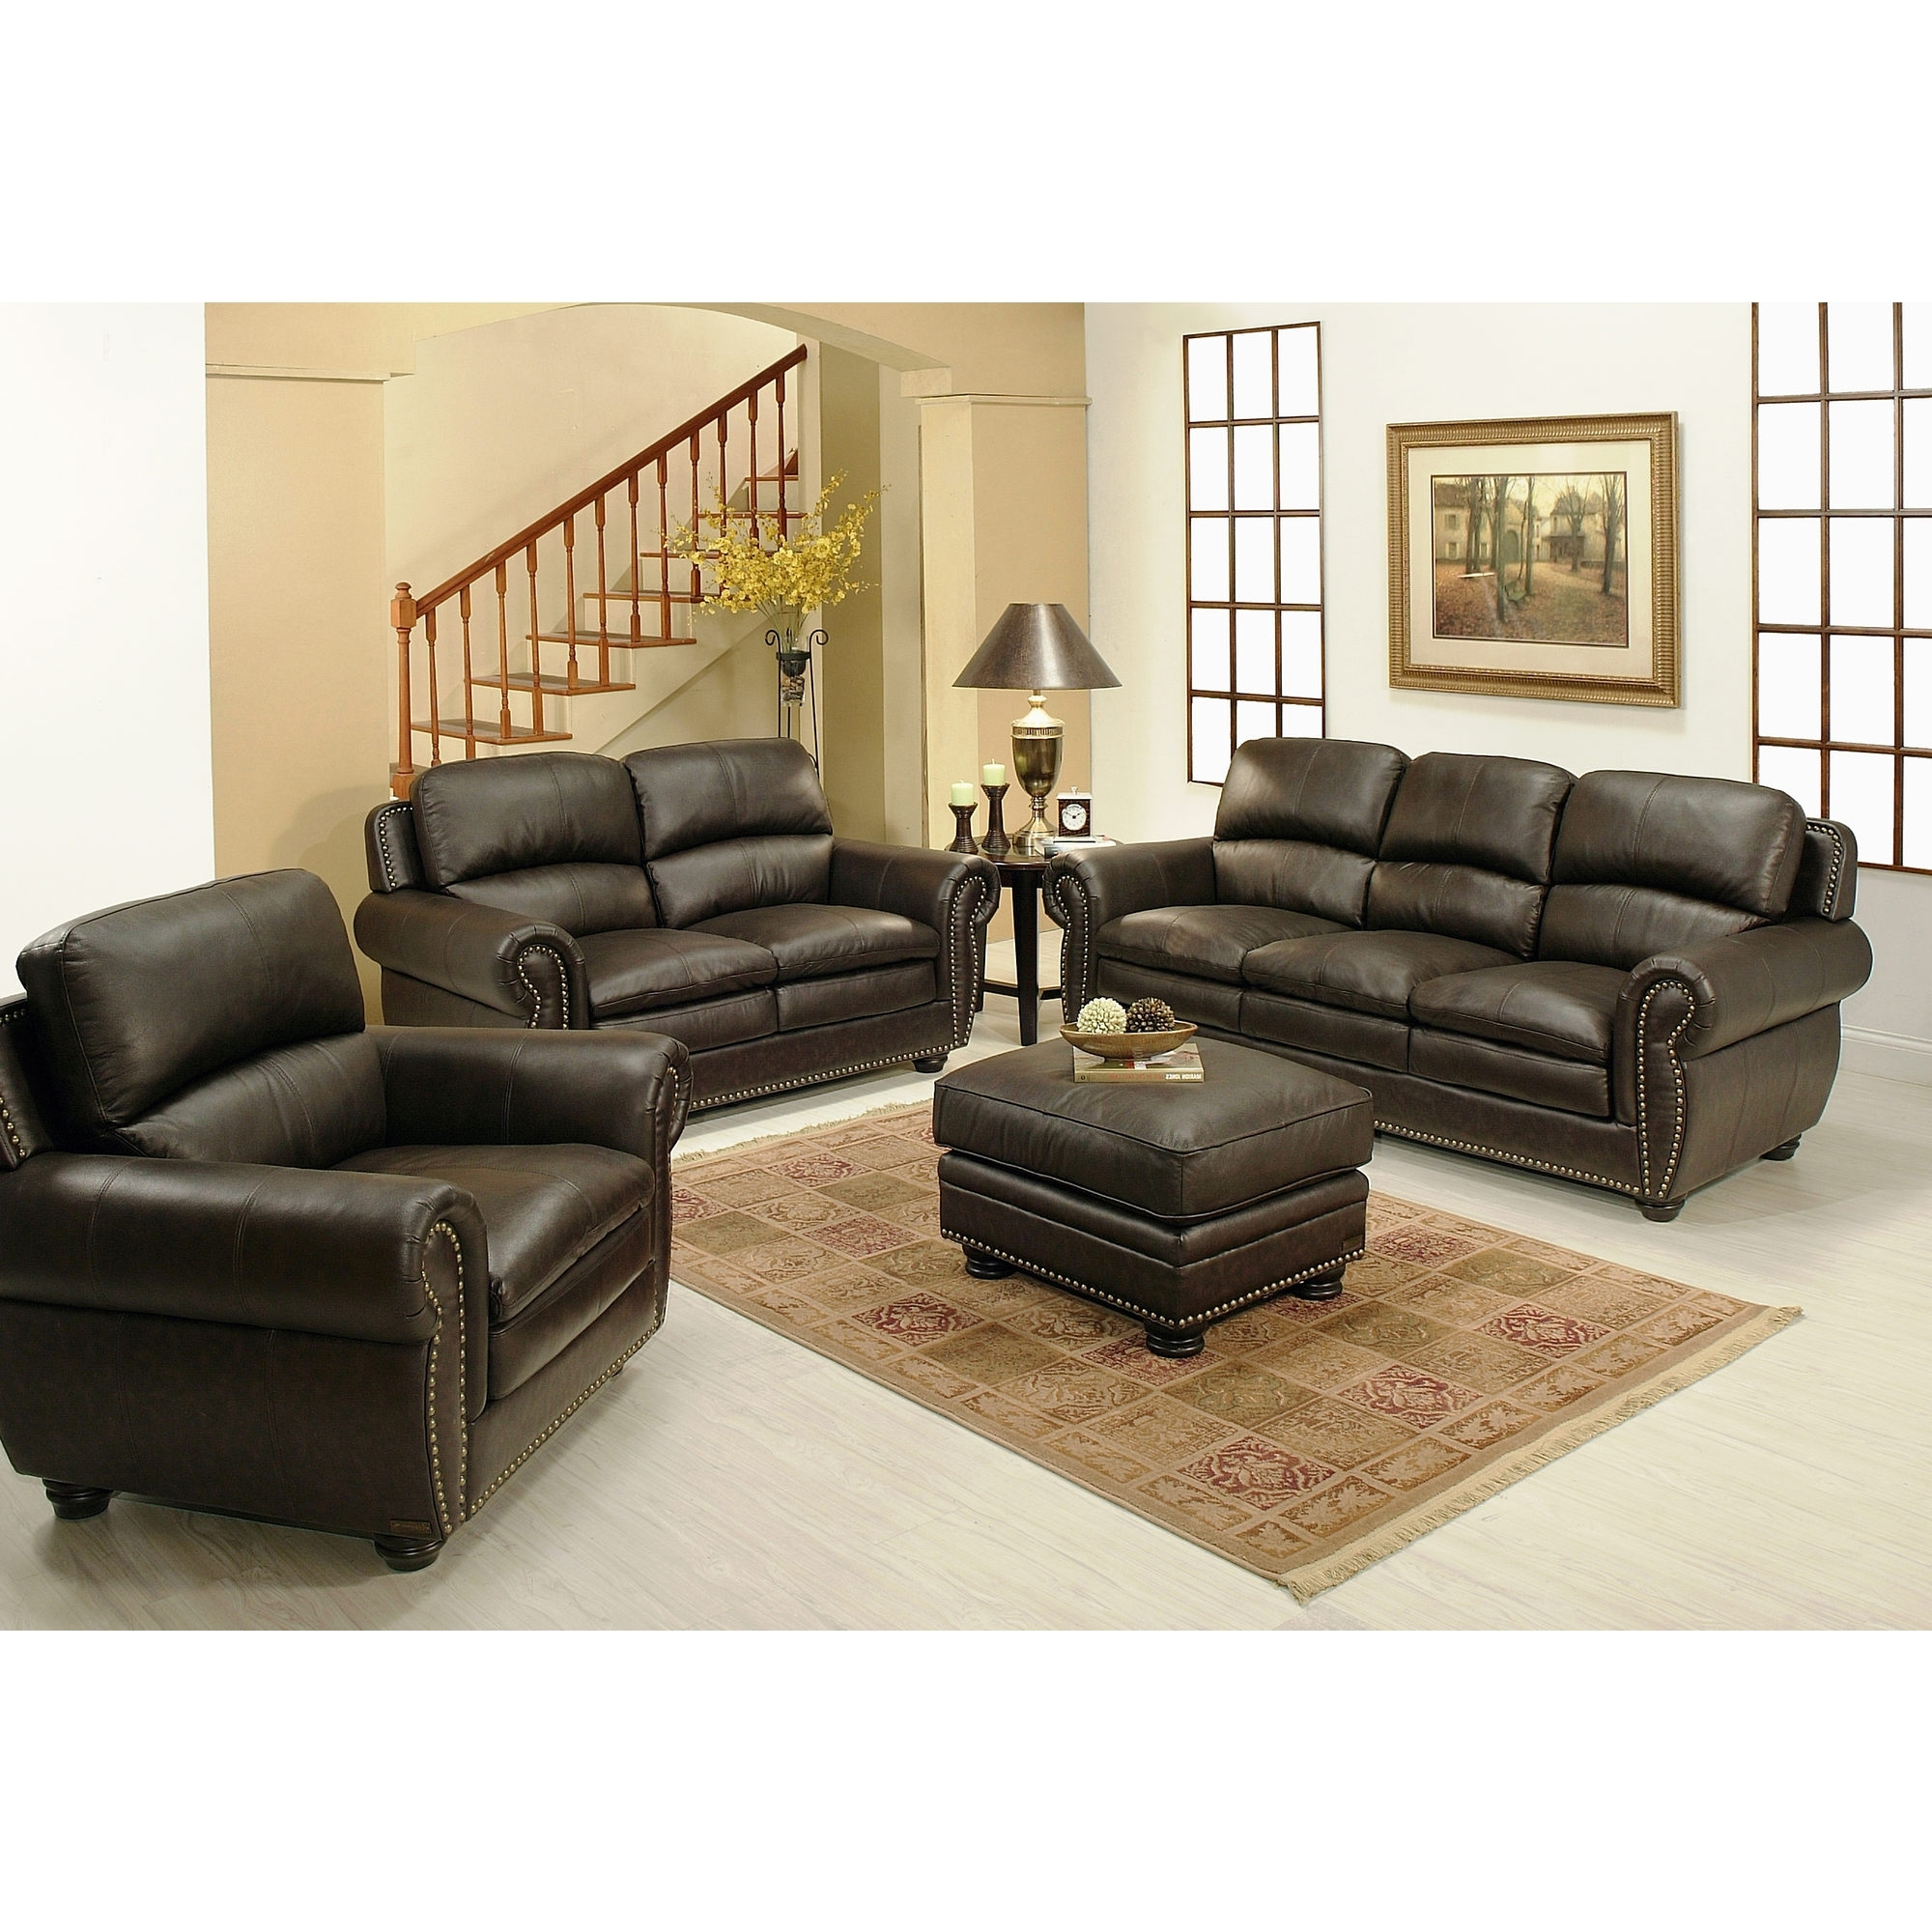 Genuine Leather Sectionals With Chaise Intended For Well Liked Furniture: Stunning Home Furniture With Cool Costco Leather (View 9 of 15)